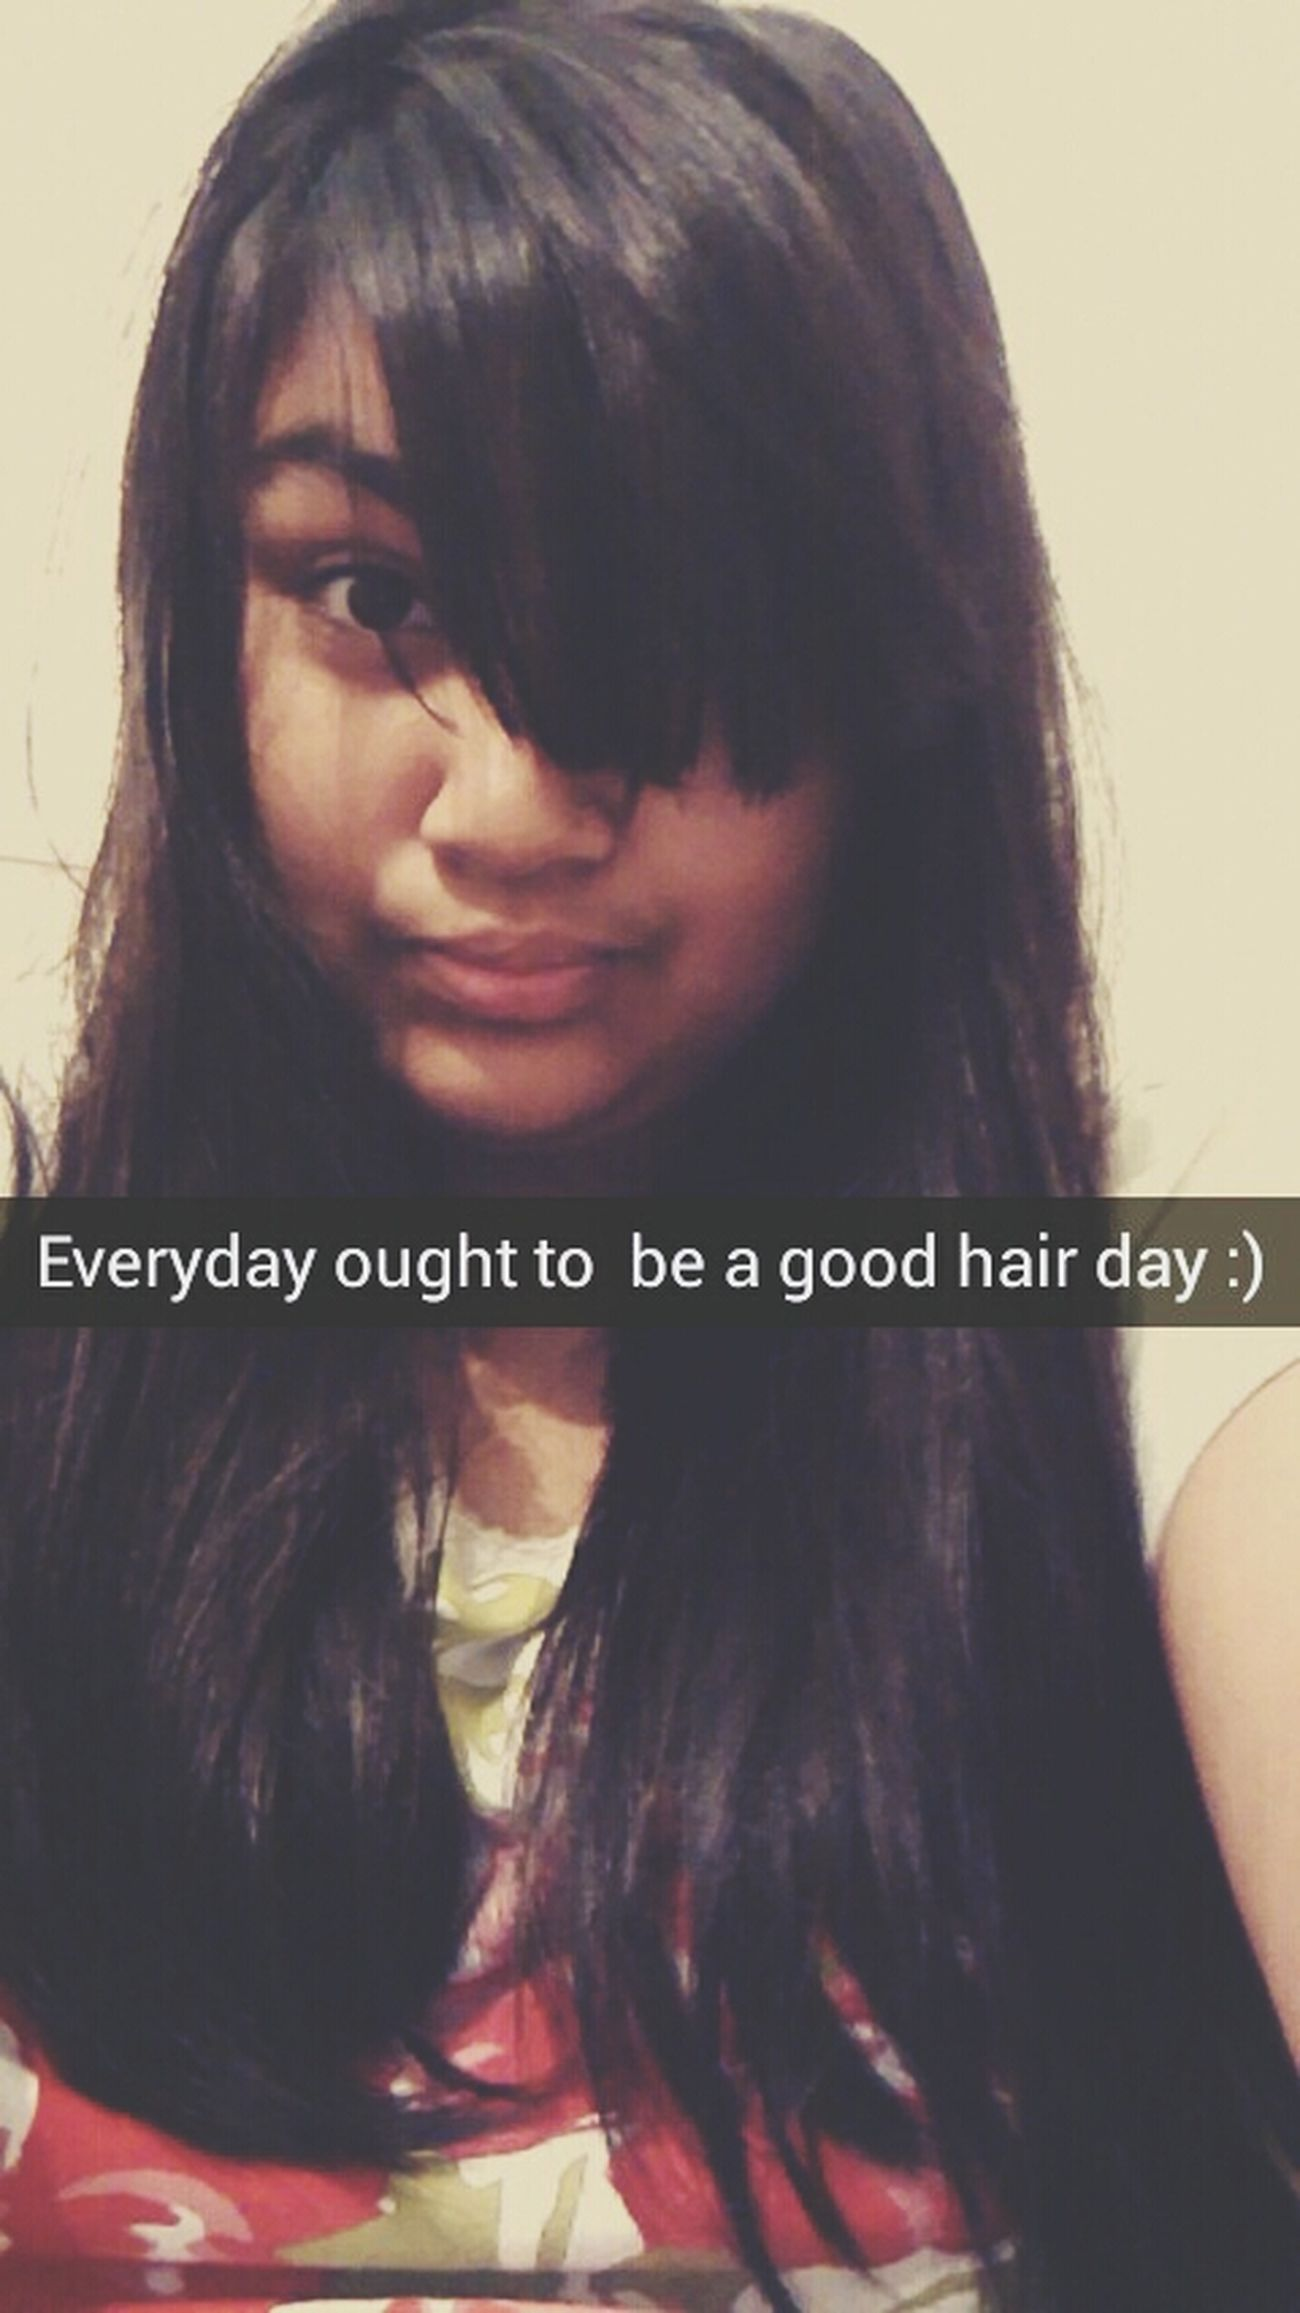 Goodhairday Longerhair Snap Chat That's Me